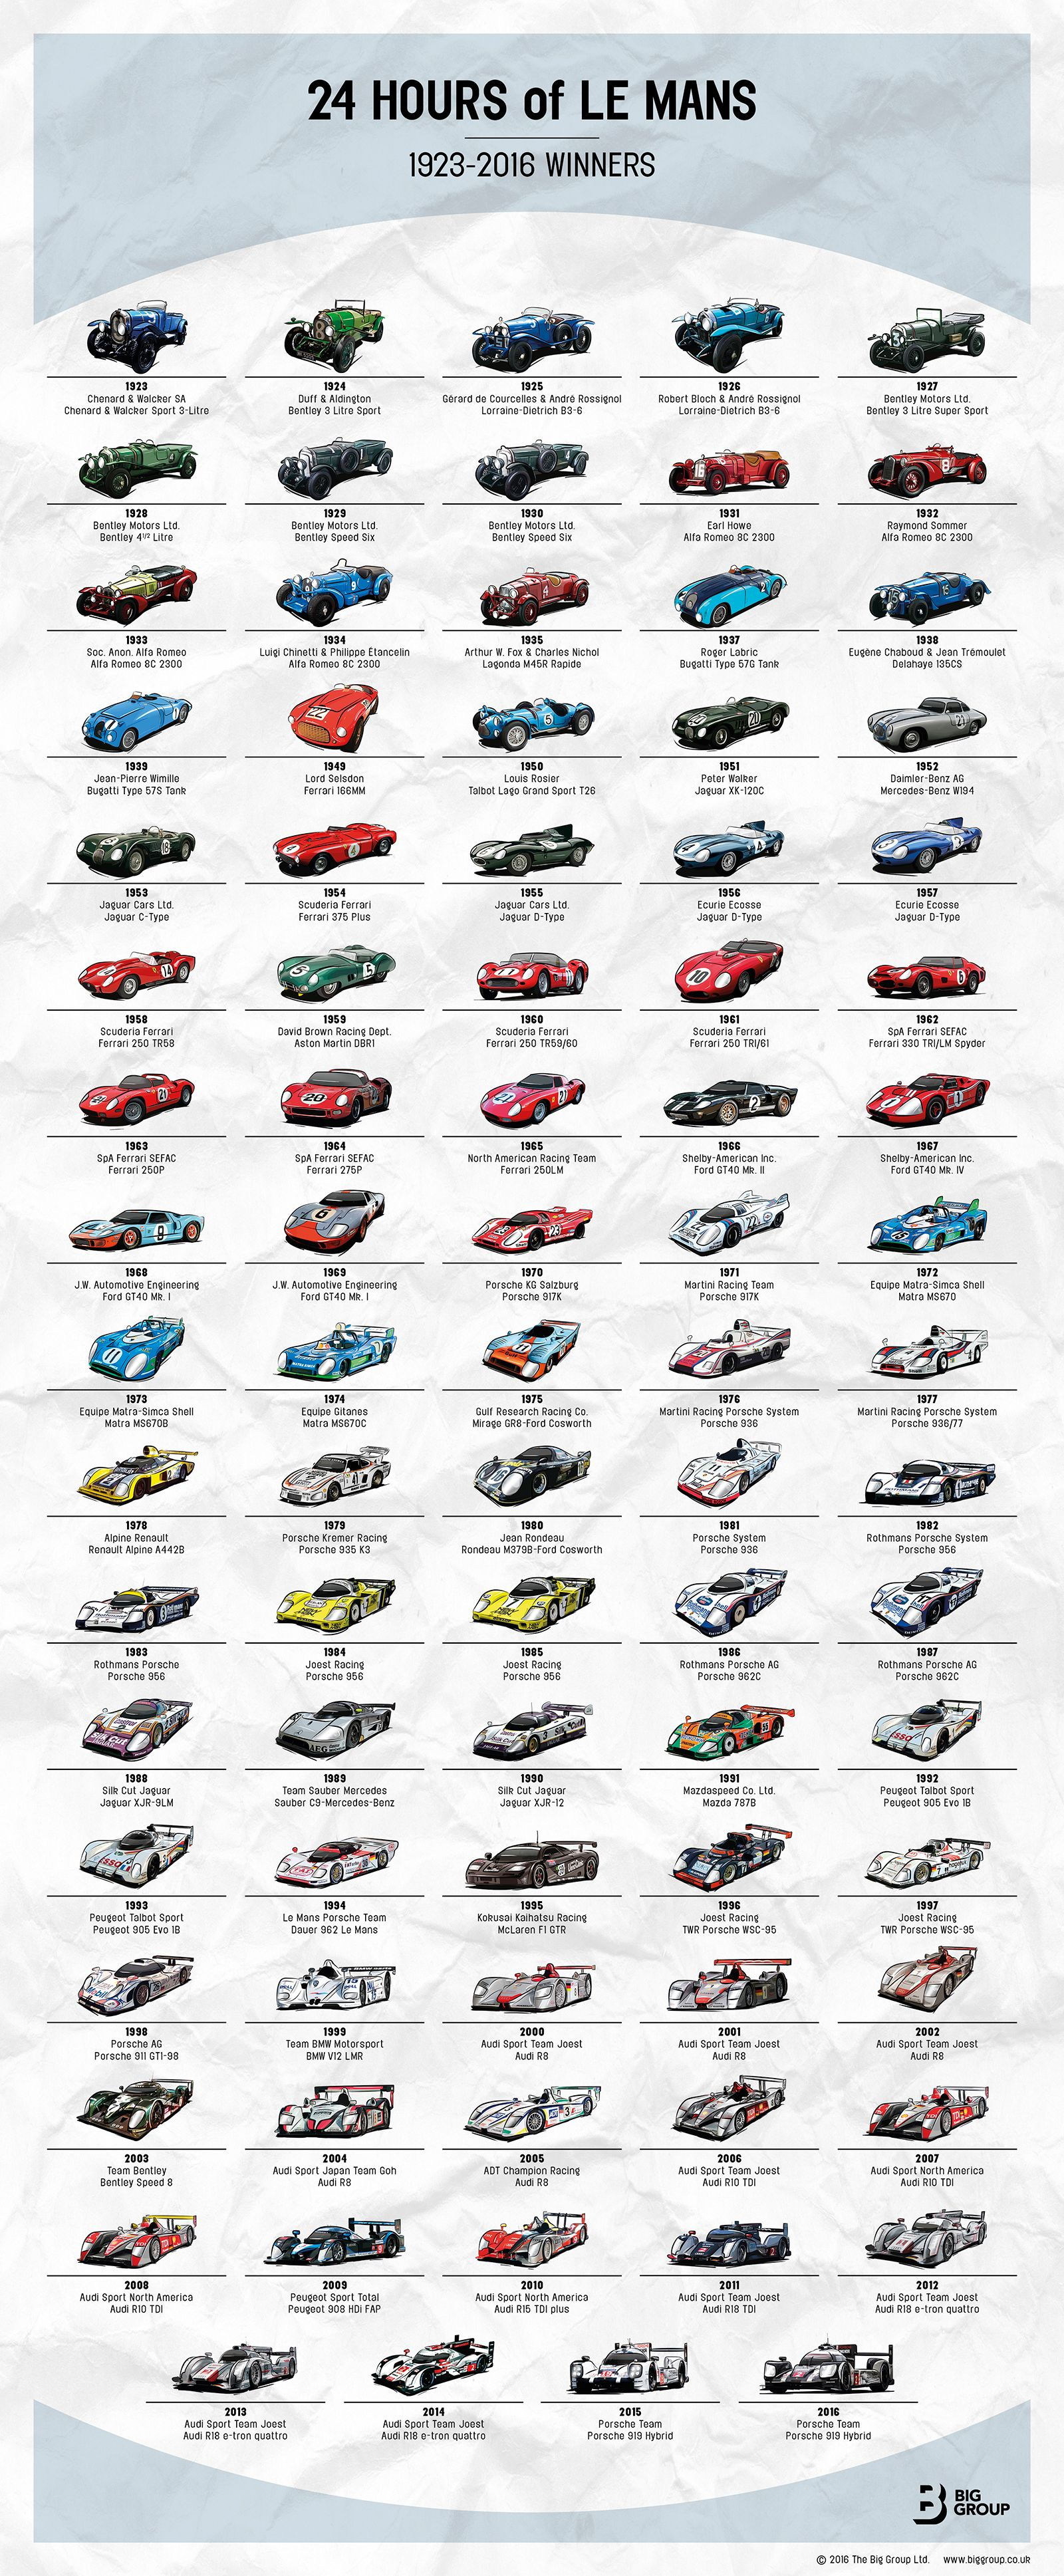 Pin By Ed C On Endurance Racing Le Mans Race Cars Sports Car